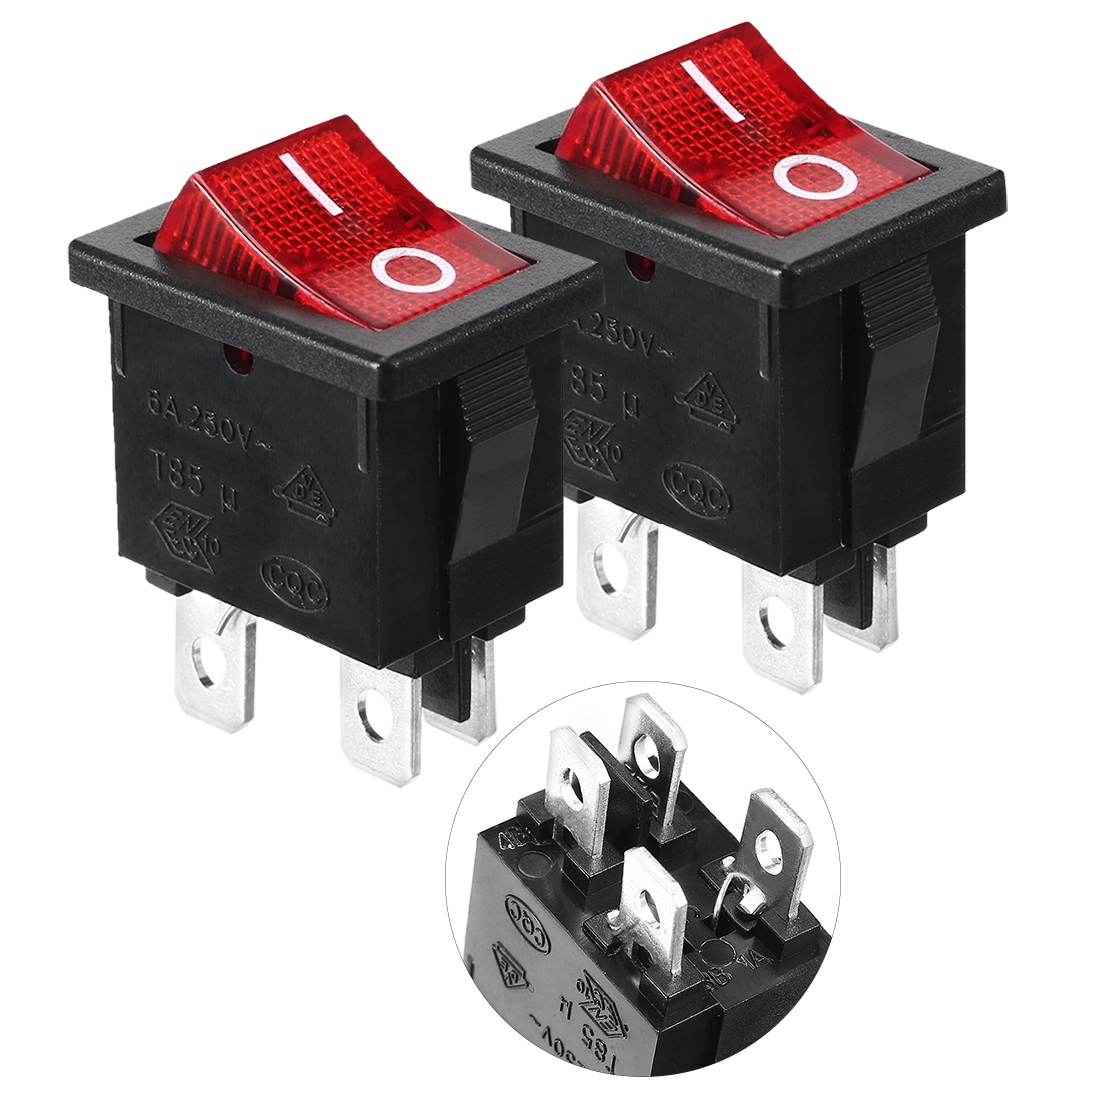 2pcs Red Light 4 Pin DPST ON-OFF Snap in Boat Rocker Switch 6A/250V 10A/125V AC